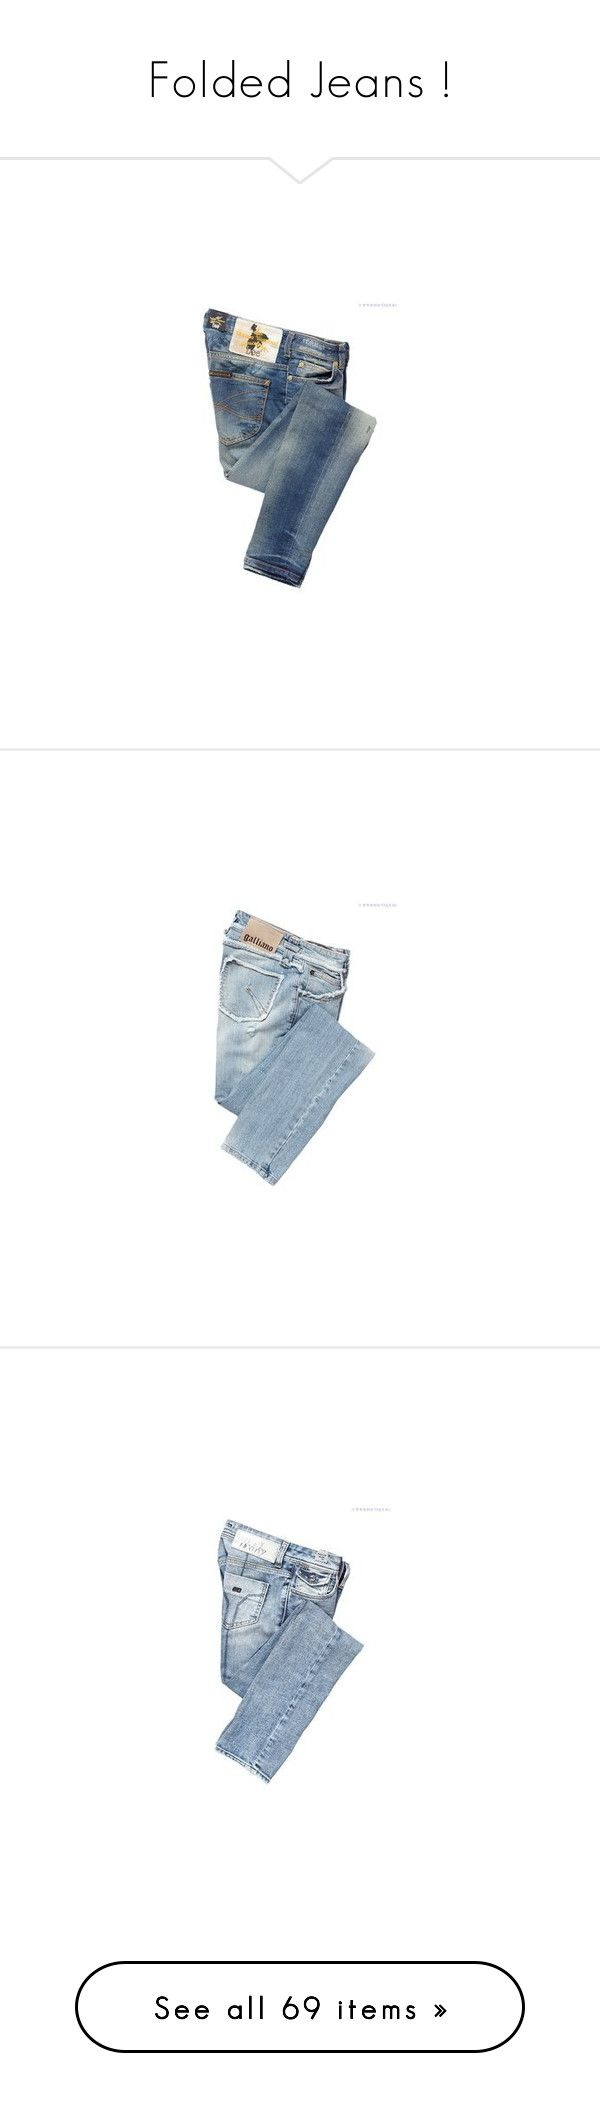 """""""Folded Jeans !"""" by emilyannxoxo ❤ liked on Polyvore featuring jeans, pants, bottoms, pantalones, blue skinny jeans, blue jeans, vivienne westwood anglomania, galliano, miss sixty and miss sixty jeans"""